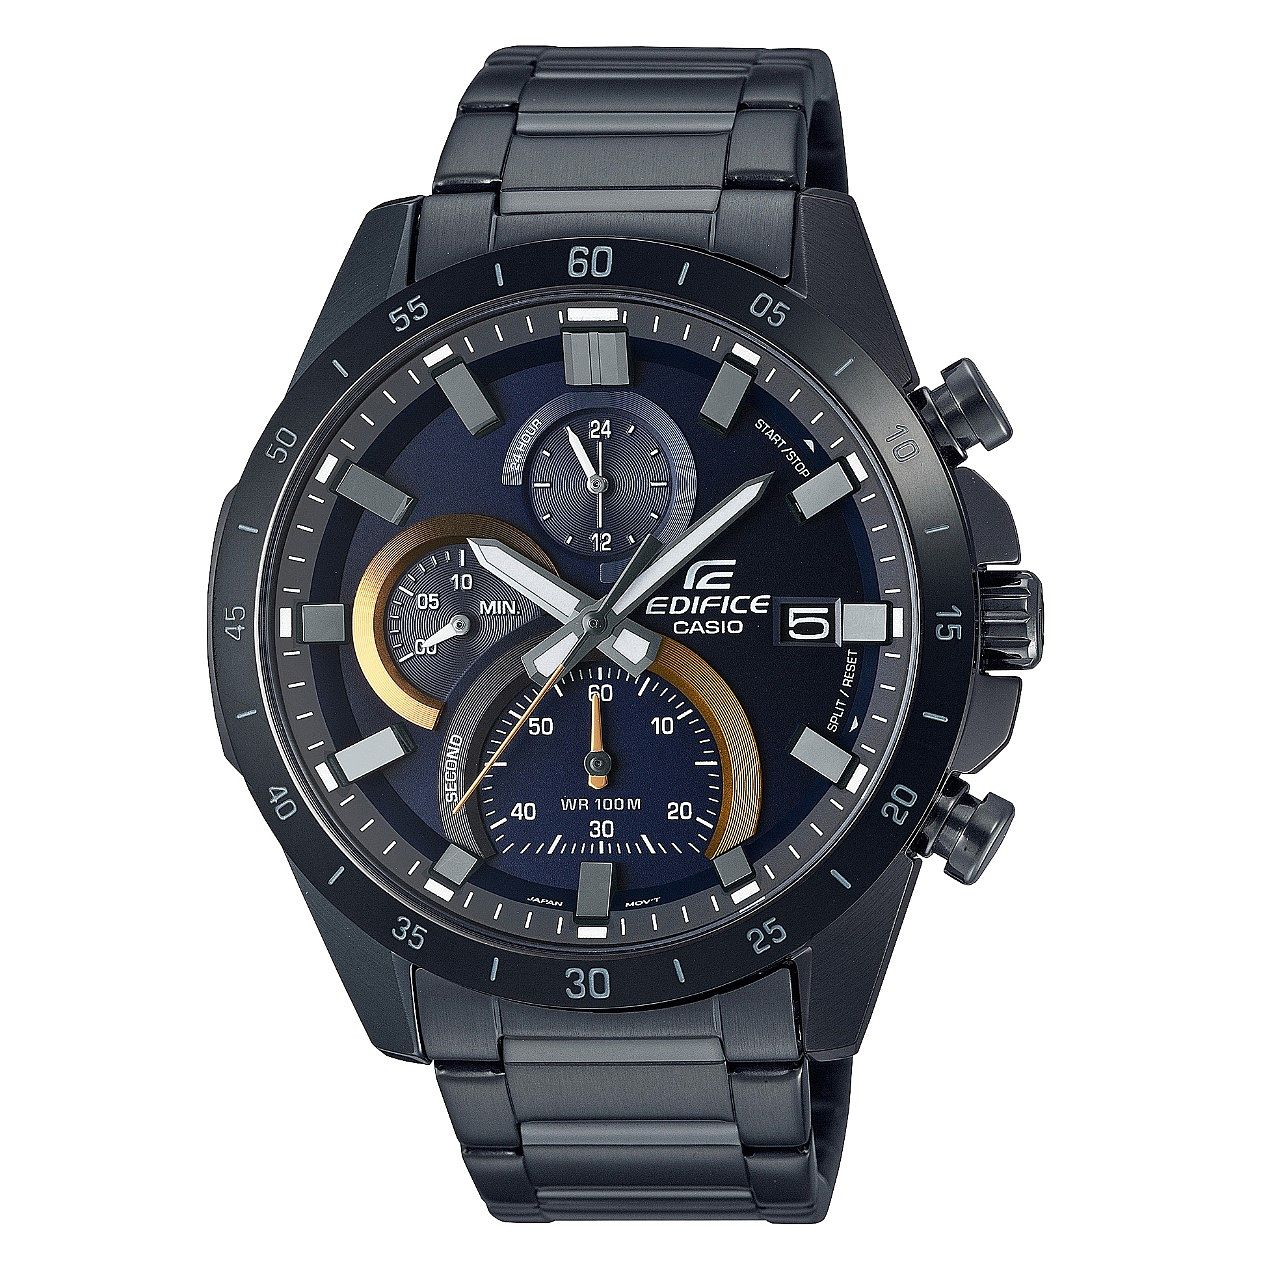 Casio Edifice Chronograph Black IP Bracelet Watch - Product number 1096990